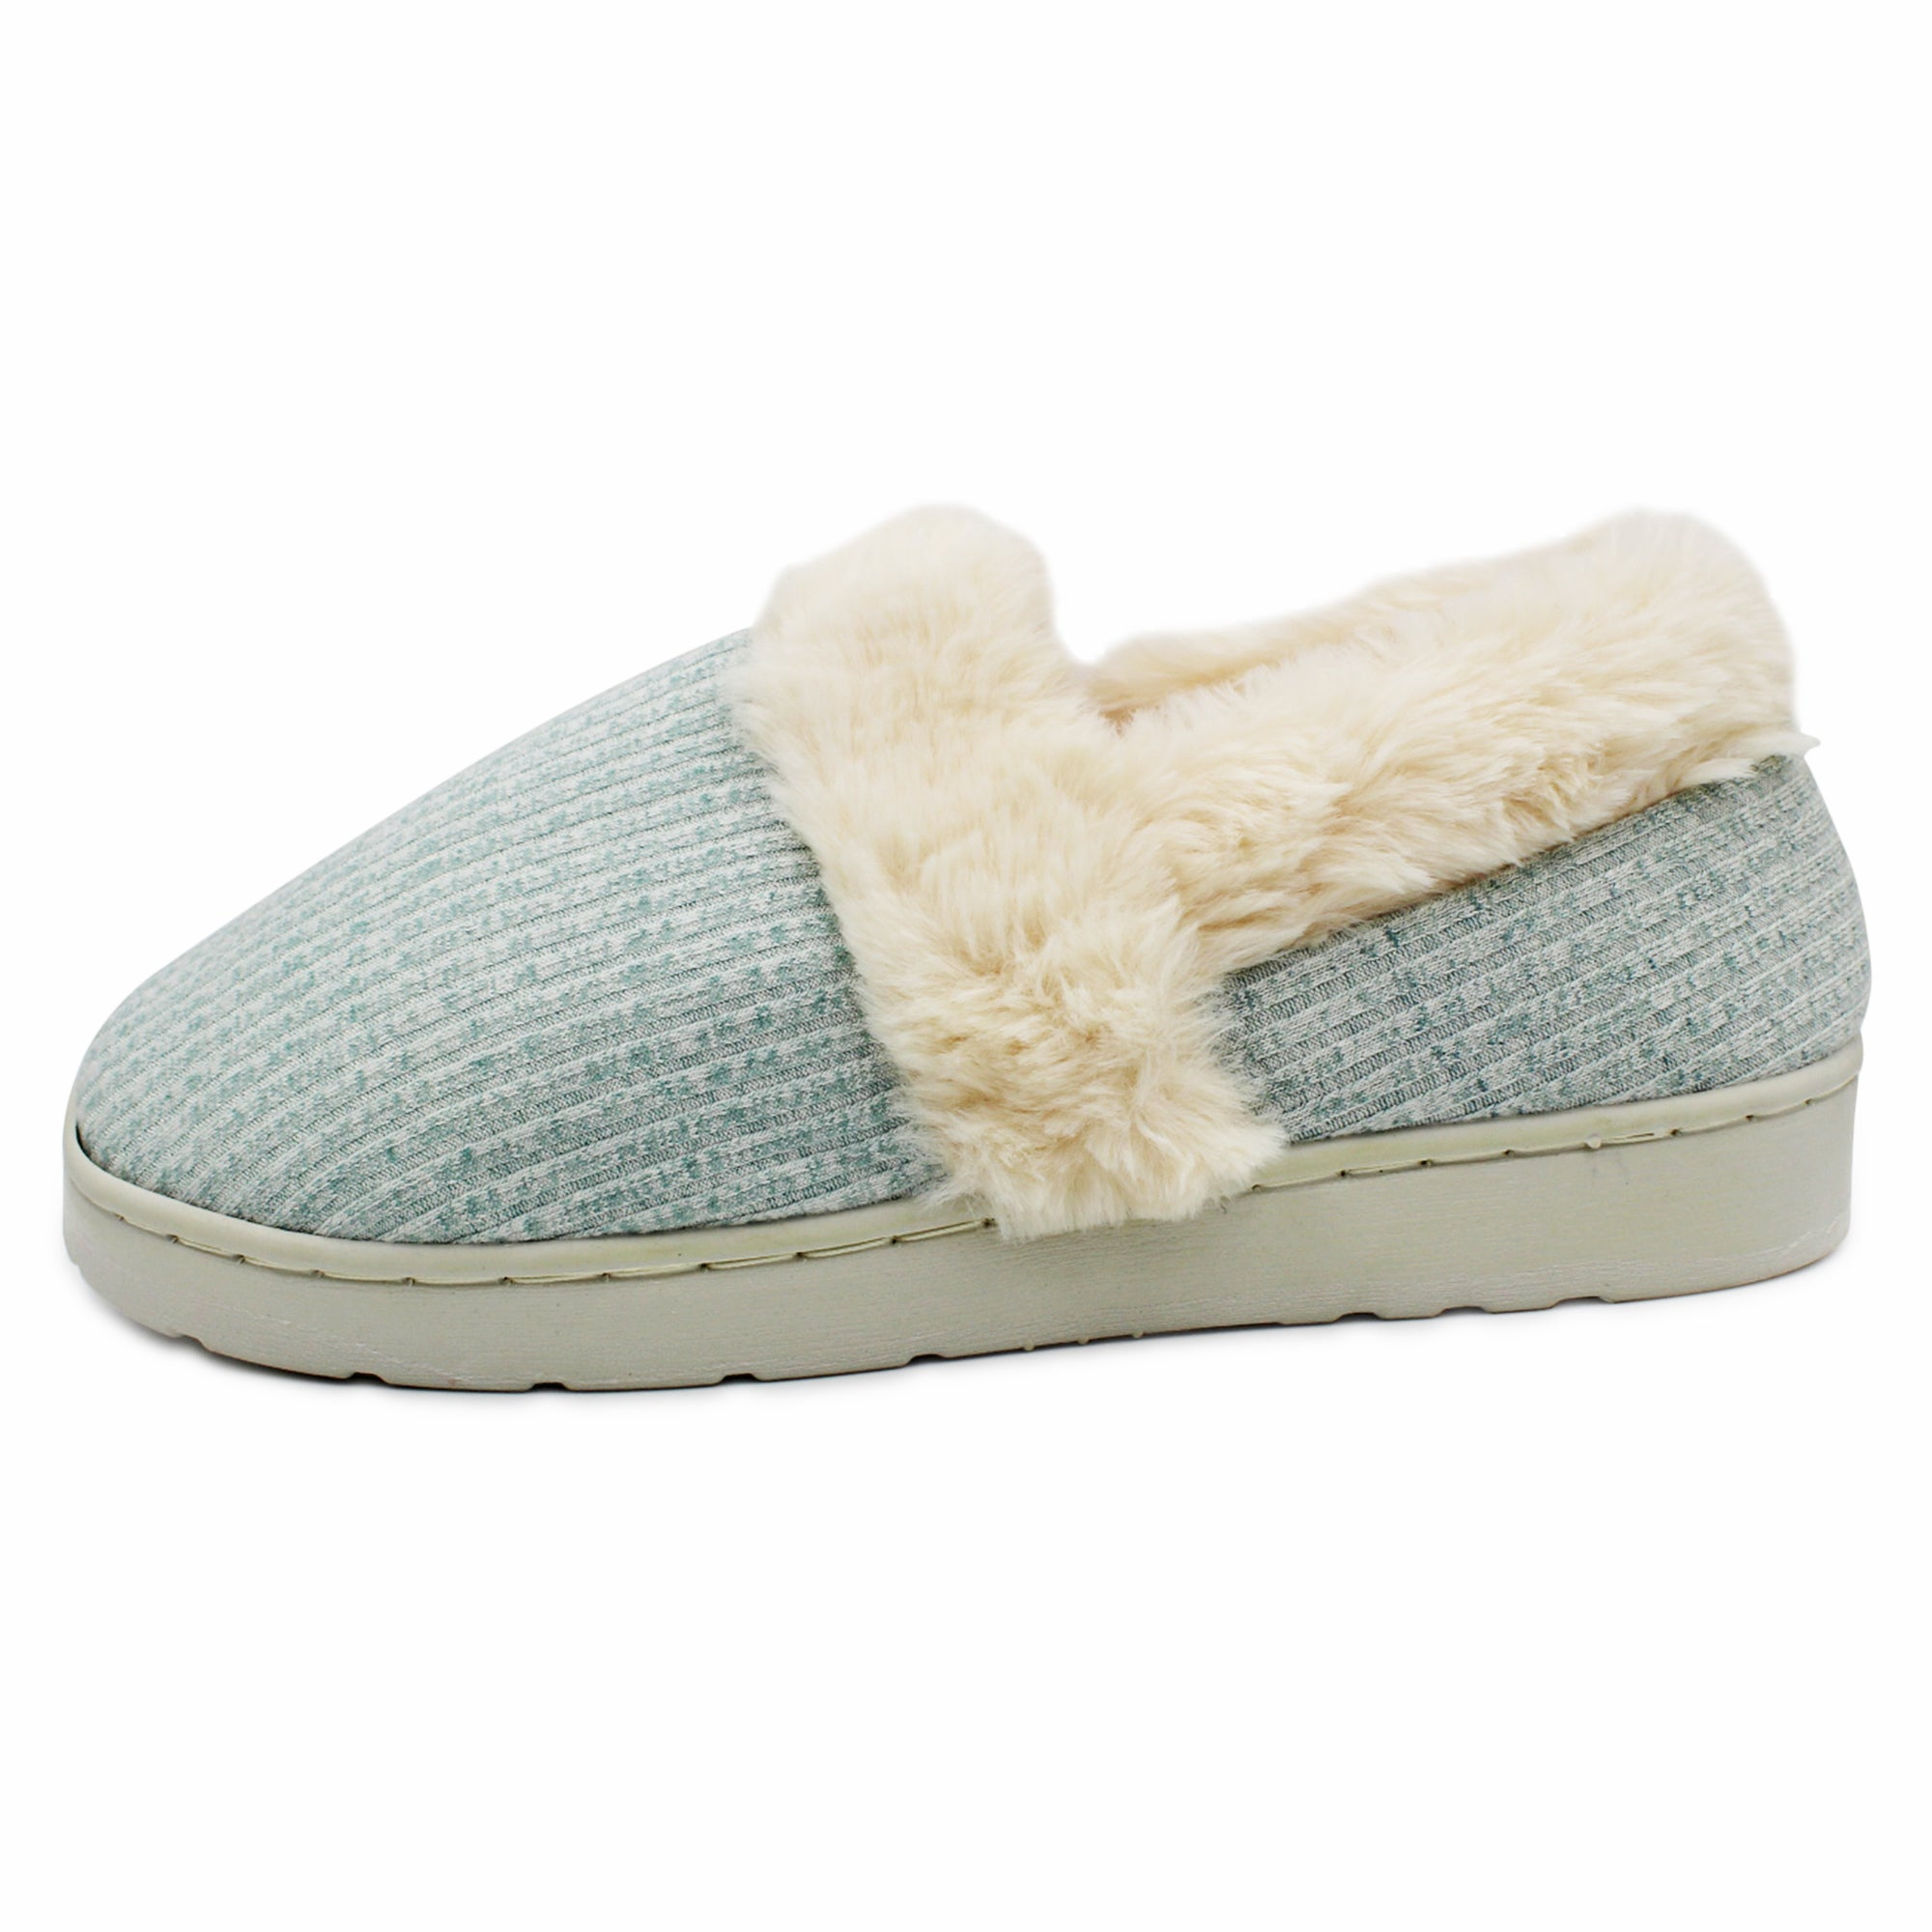 LAVRA Women's Fur Trimmed Slipper Rib Knit Slip On Cozy Closed Back Slipper Moccasin House Shoes